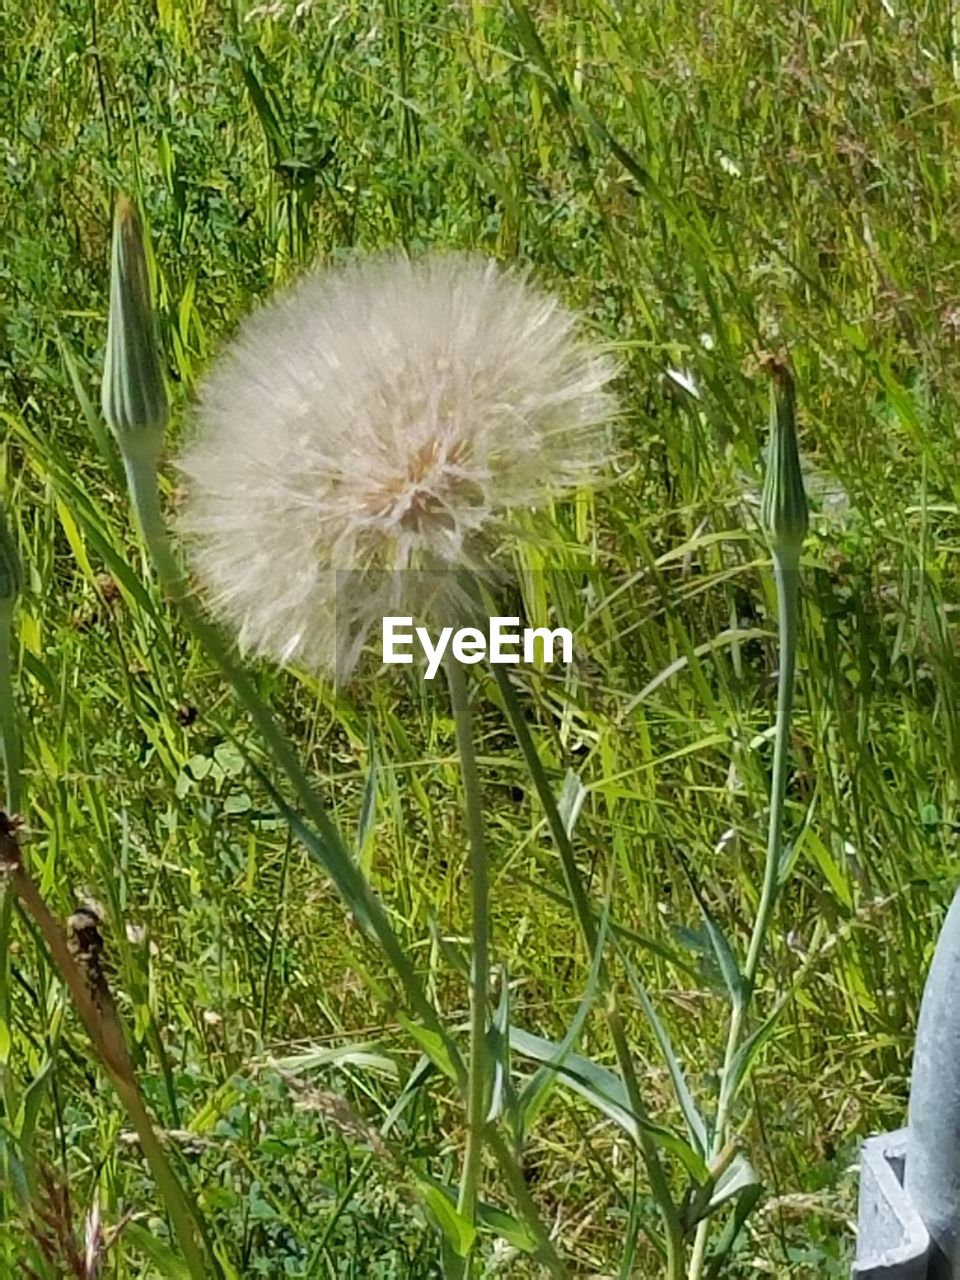 flower, growth, dandelion, nature, fragility, plant, freshness, beauty in nature, softness, white color, wildflower, field, green color, uncultivated, grass, flower head, no people, close-up, day, outdoors